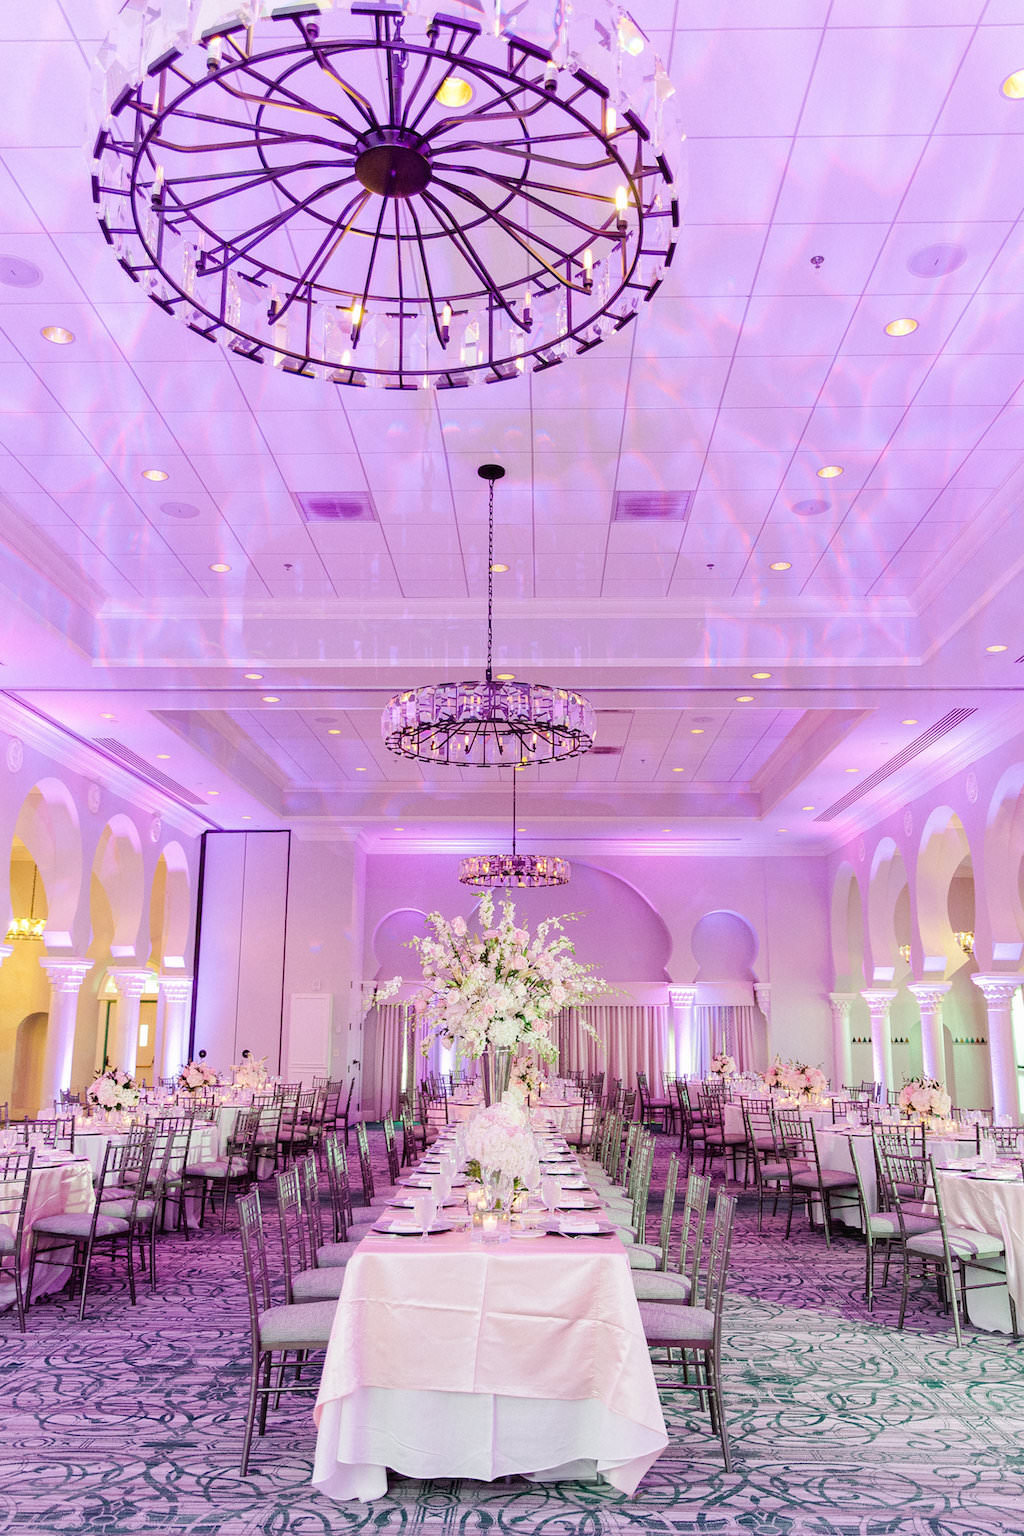 Elegant Ballroom Reception Decor, Long Banquet Table with White Linen and High White Floral Centerpiece, Purple/Pink Uplighting, Silver Chiavari Chairs | Tampa Wedding Photographer Ailyn La Torre | Venue The Vinoy Renaissance St. Petersburg Resort & Golf Club